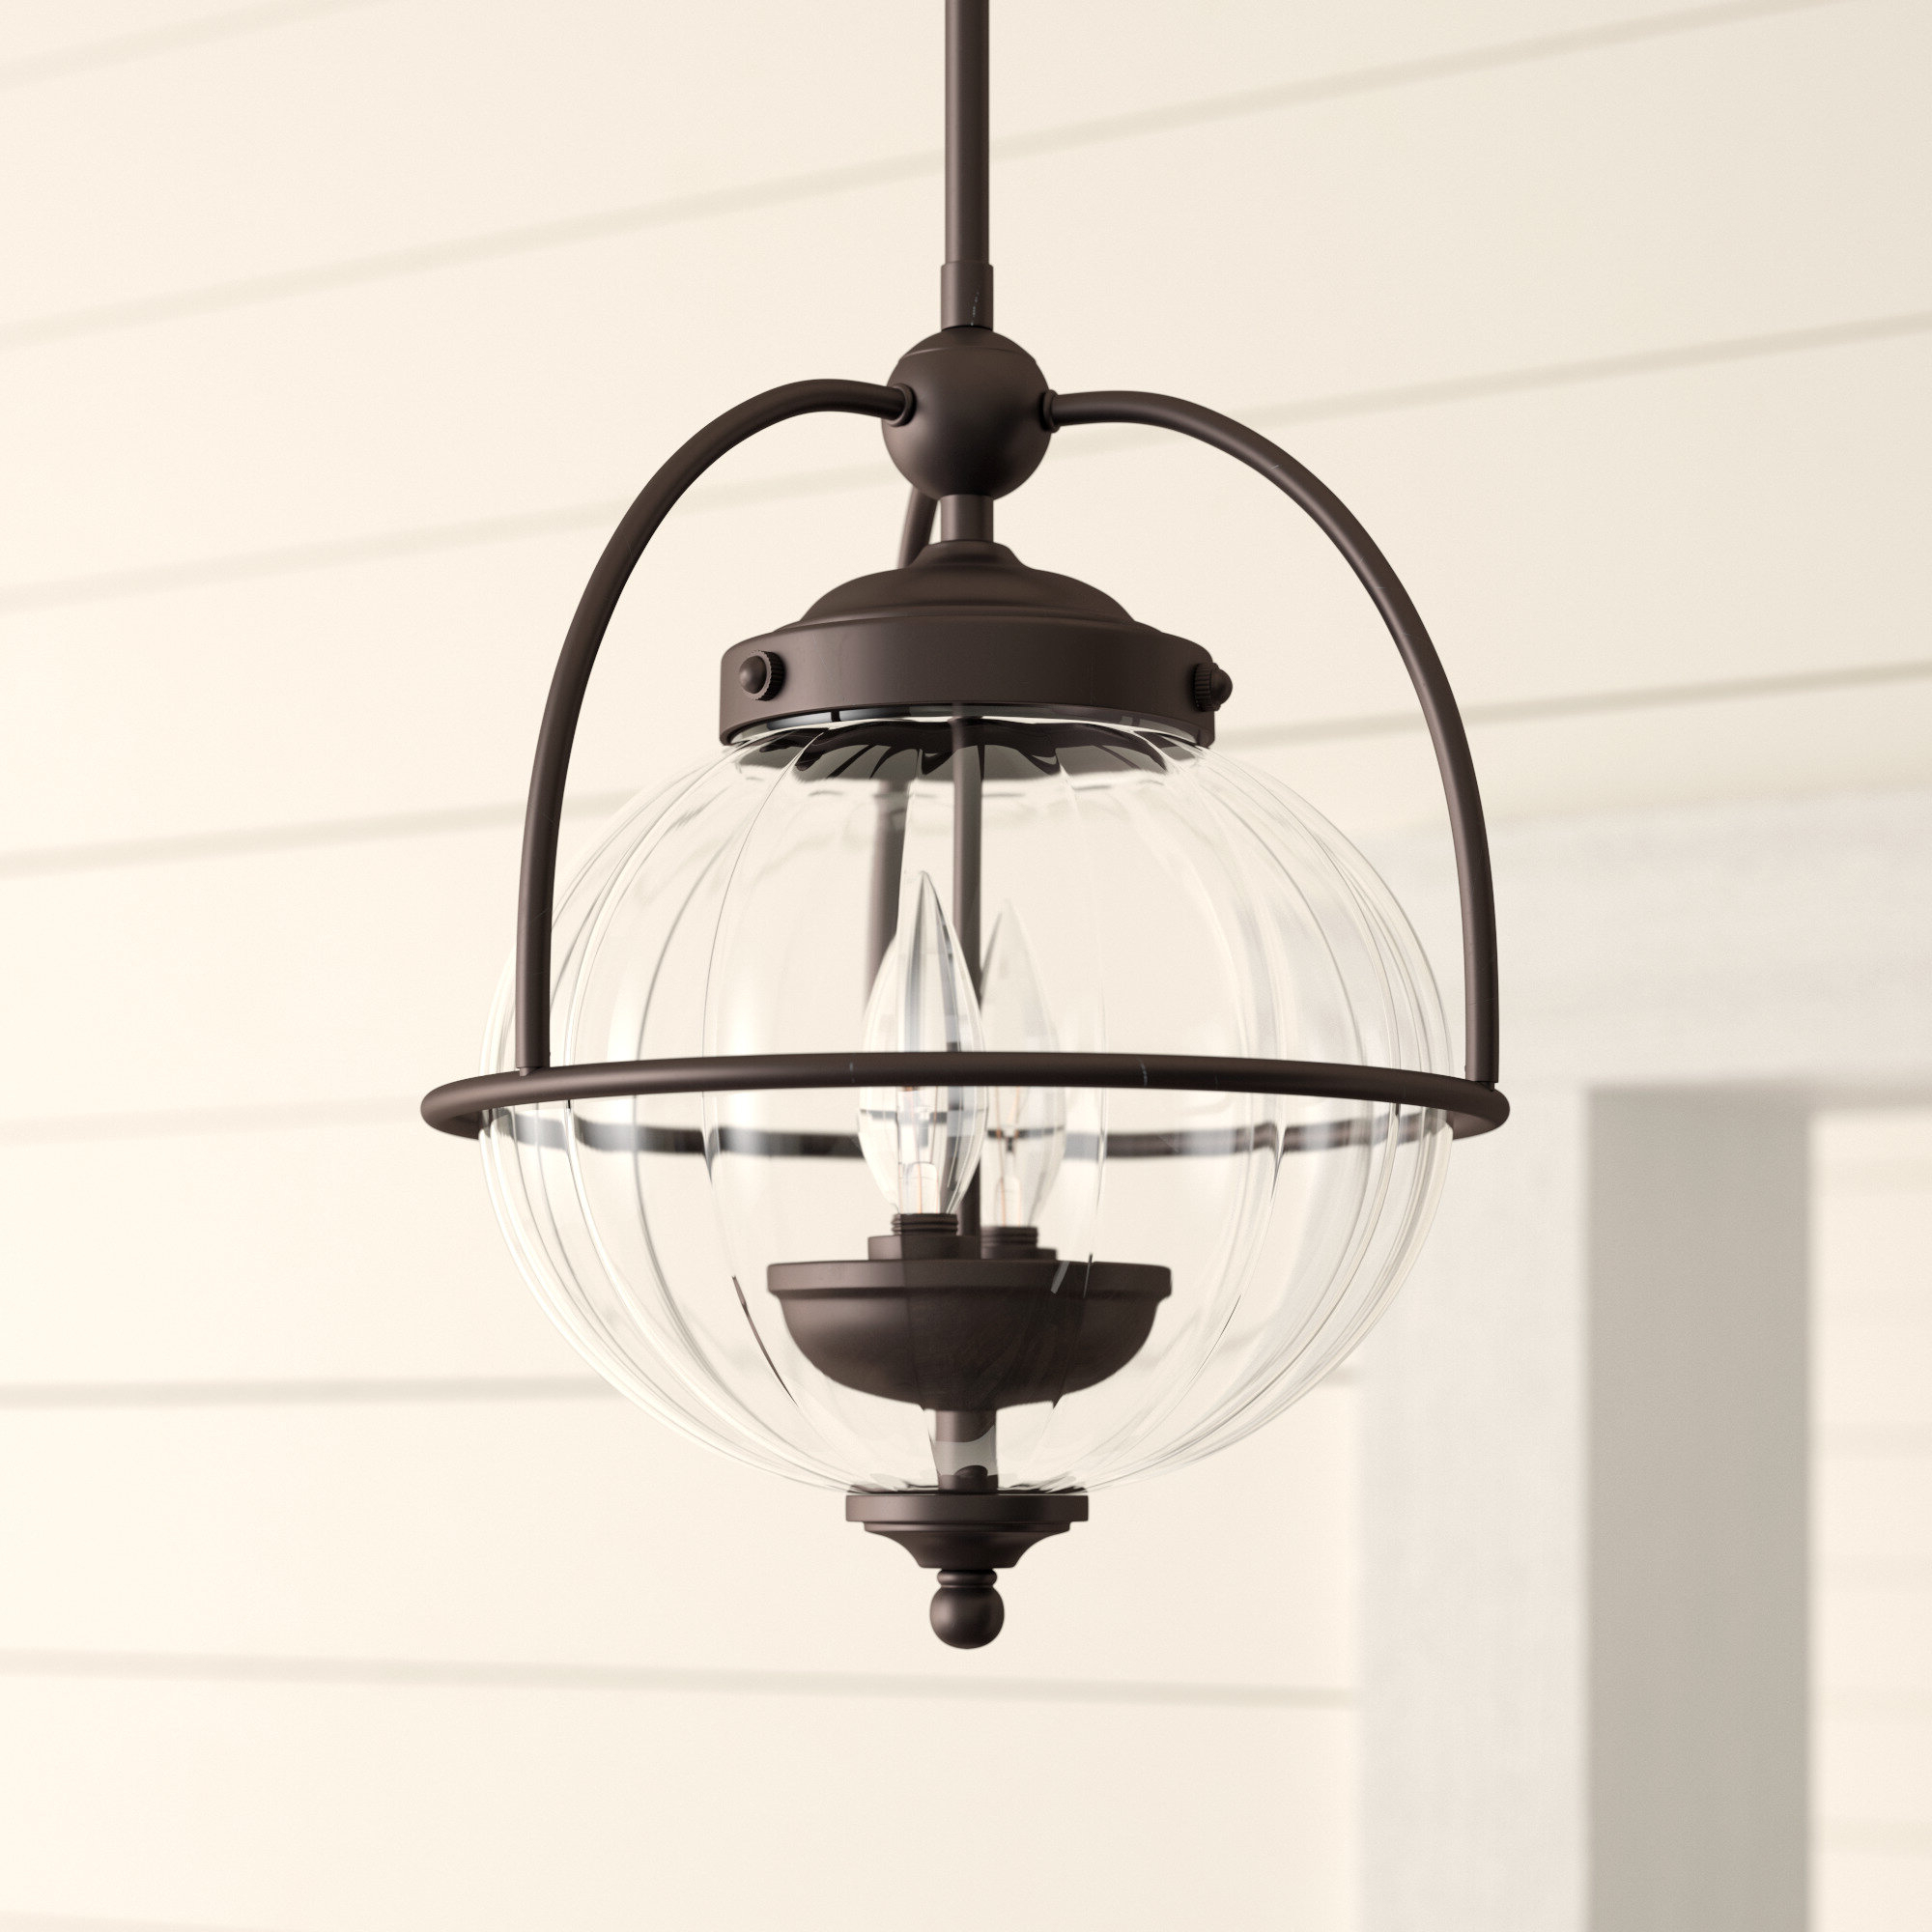 Most Popular Irwin 1 Light Single Globe Pendants Pertaining To Farmhouse & Rustic Globe Pendants (View 14 of 20)